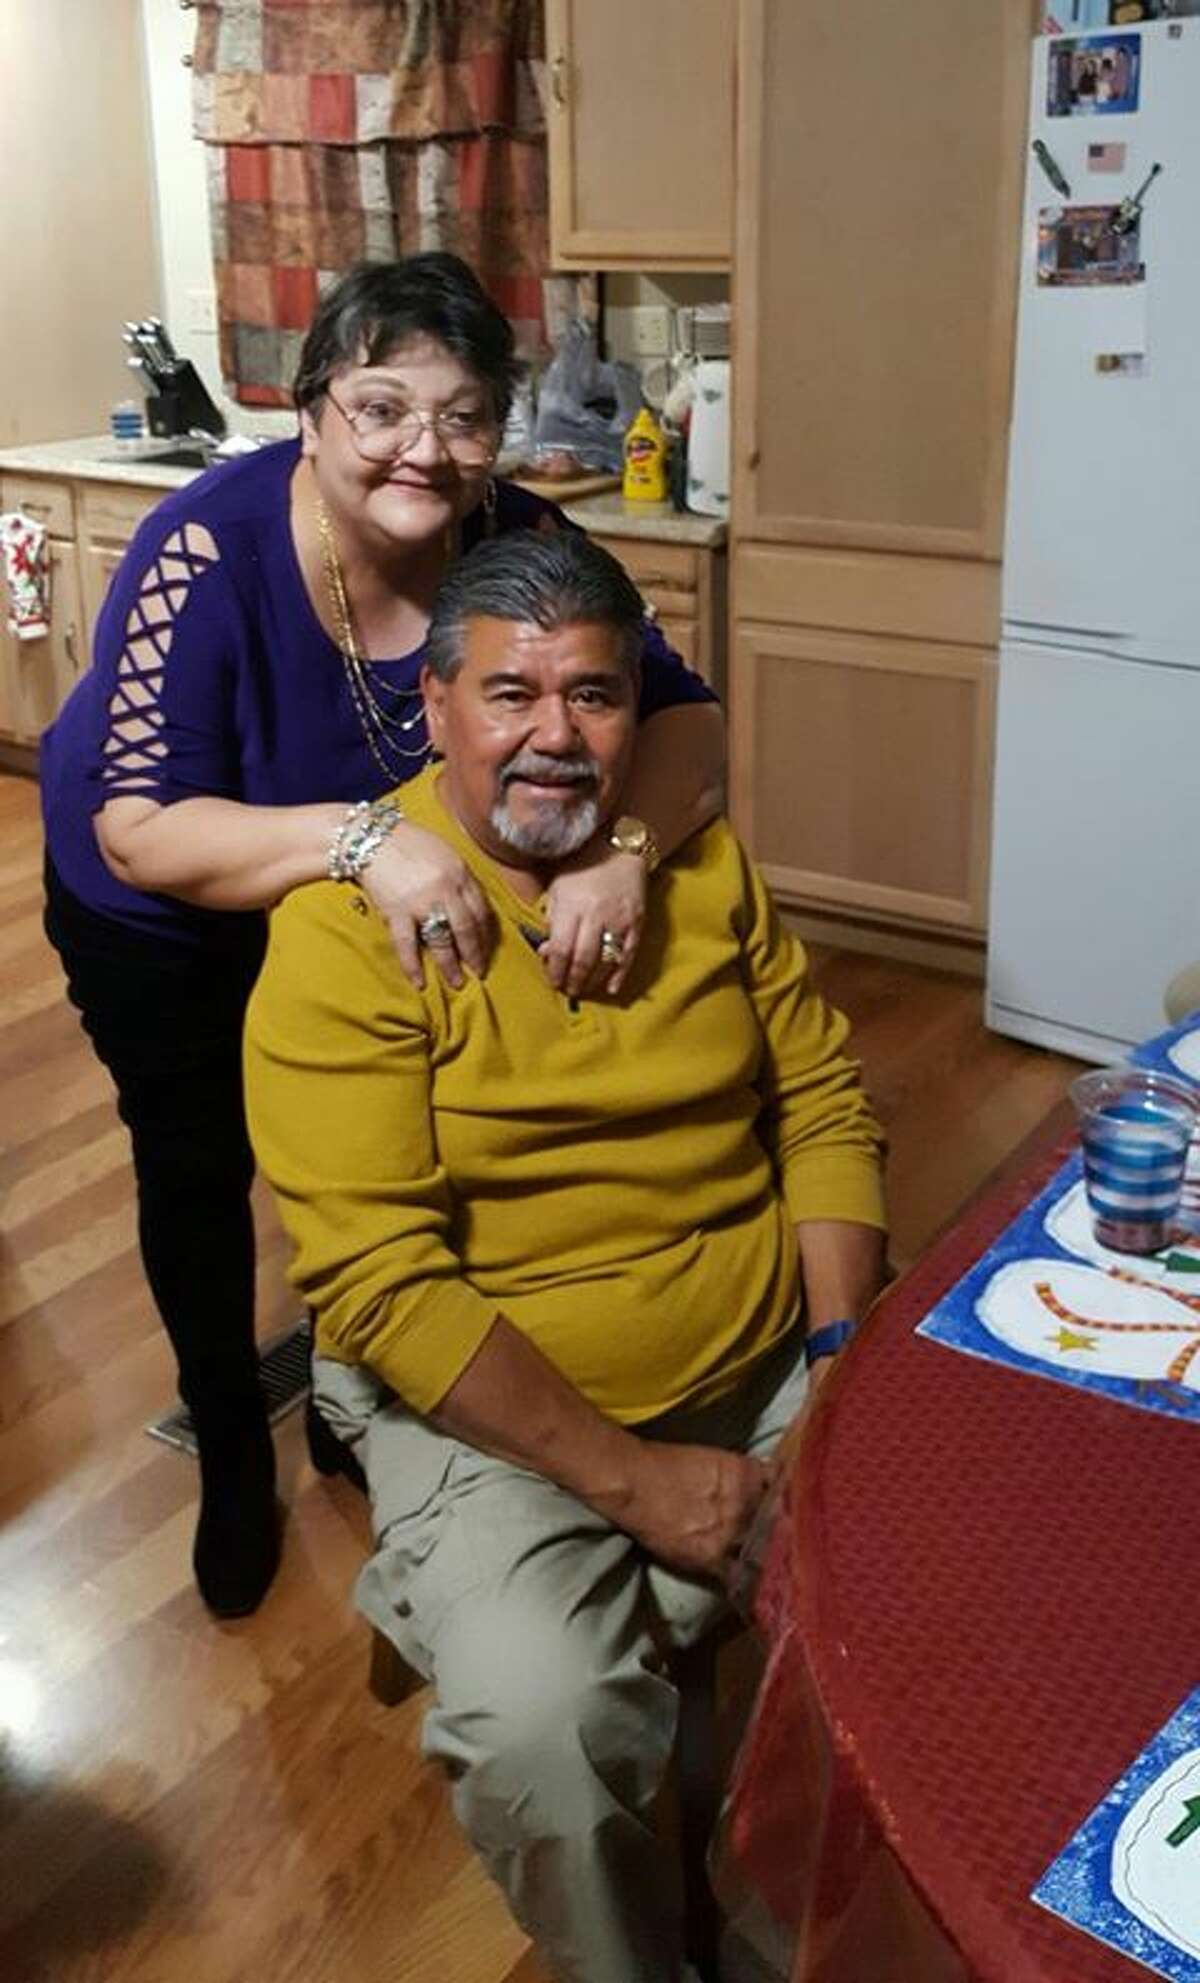 Margie and Raul Flores.